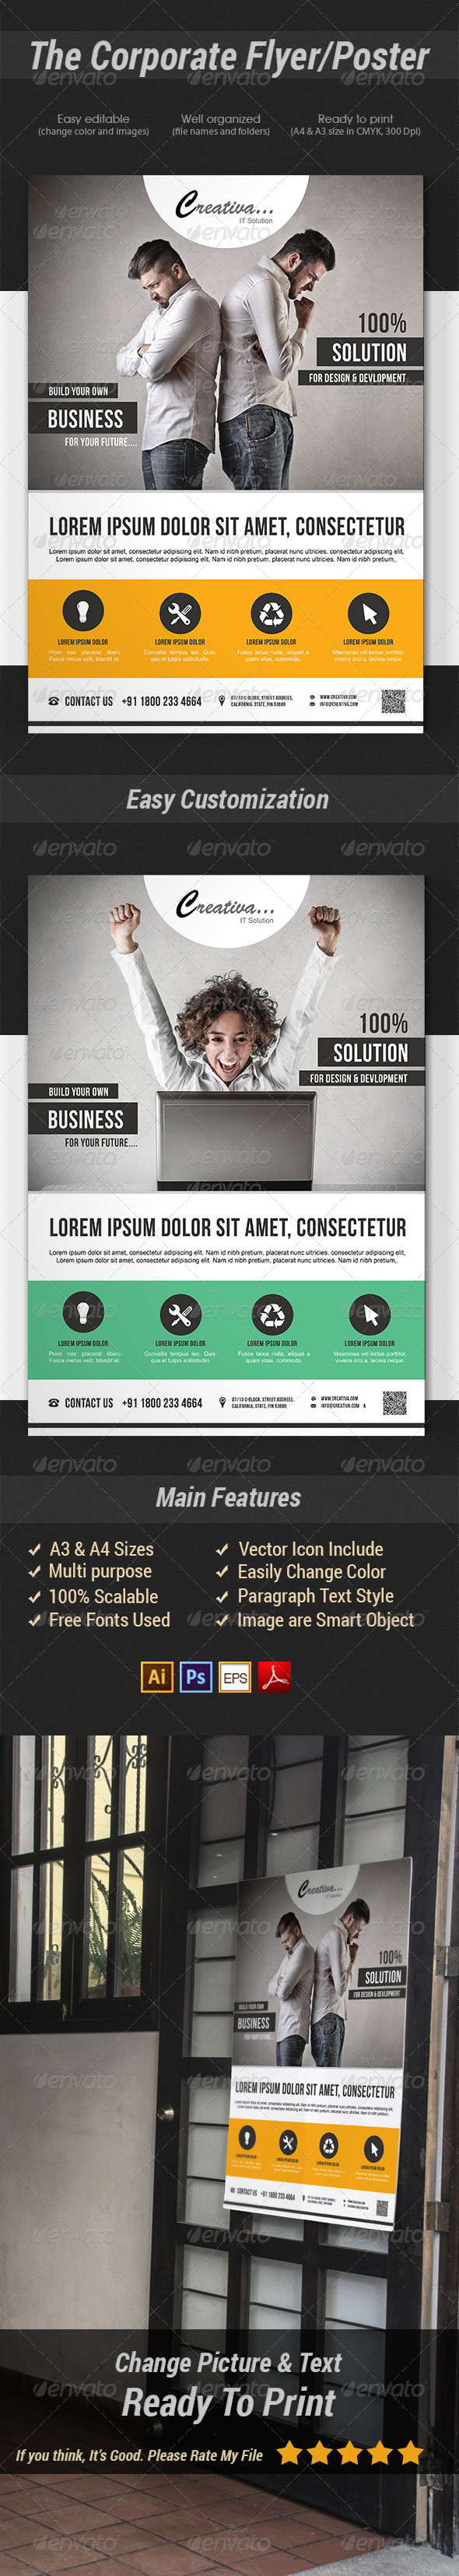 GraphicRiver The Corporate Flyer Poster 7459270